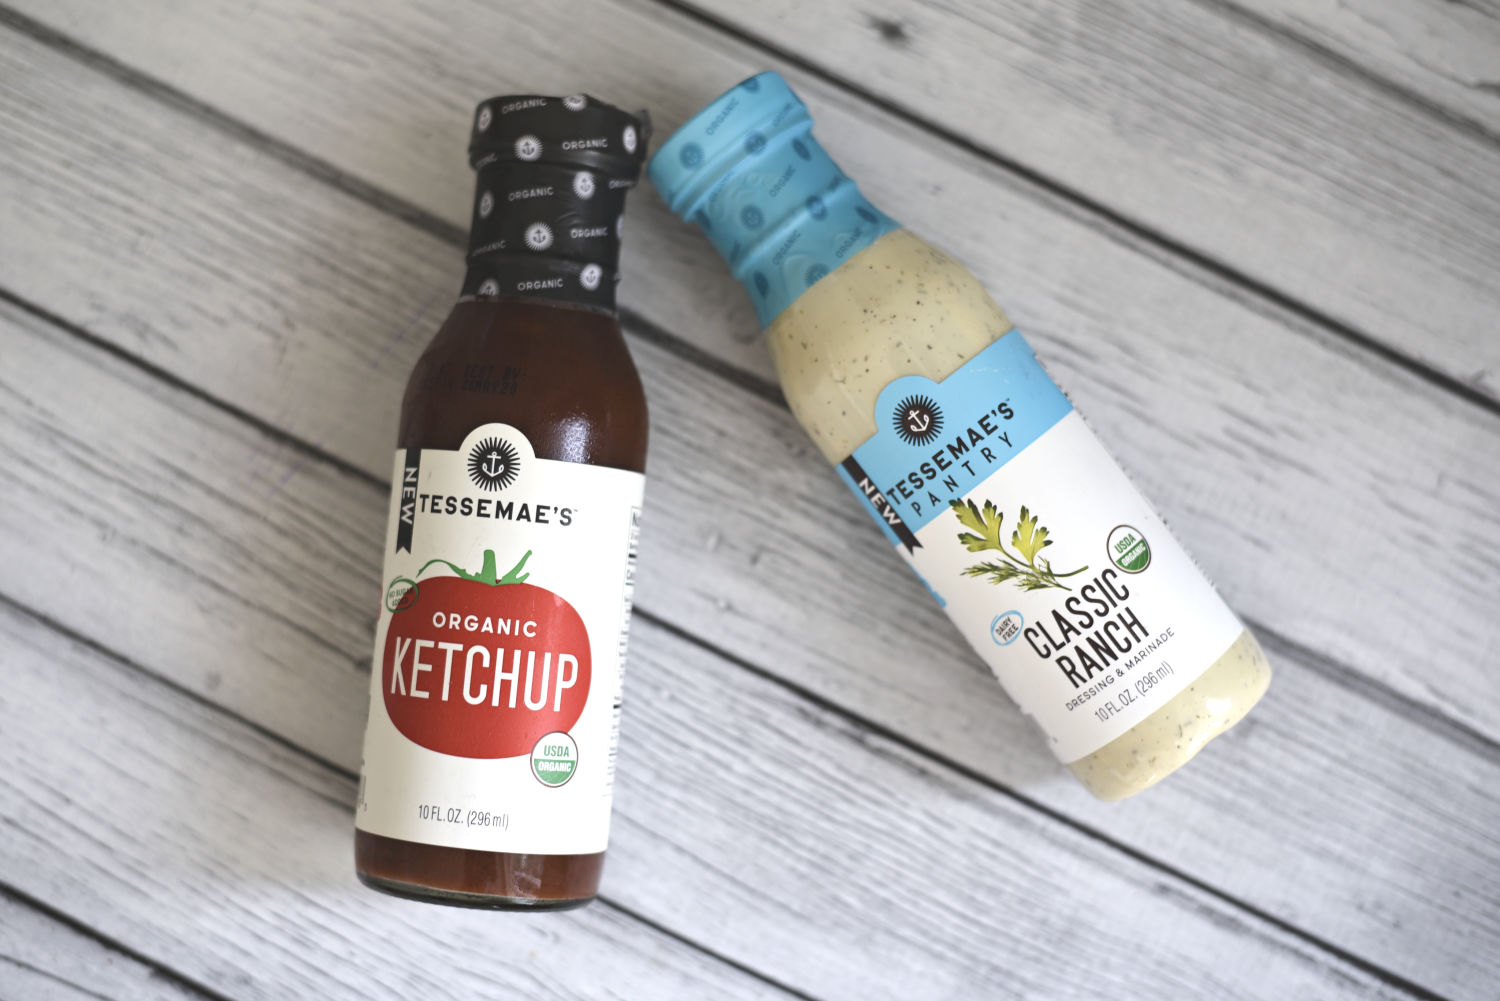 bottles of Tessemaes ketchup and ranch dressing